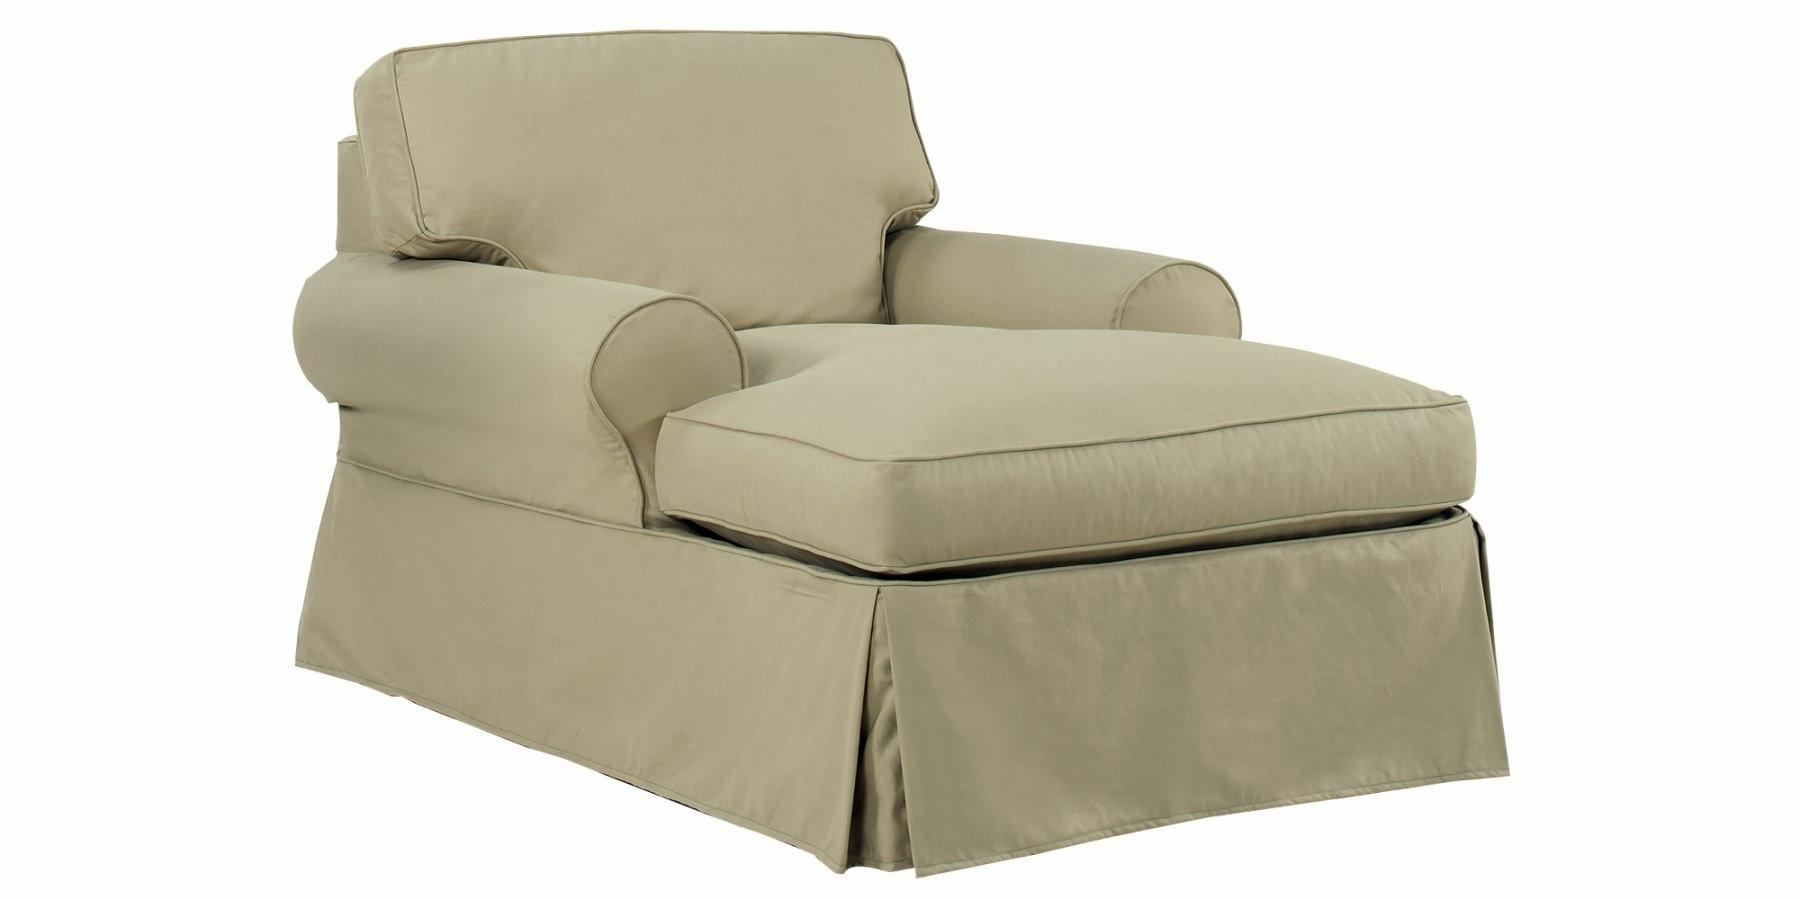 Slipcovered Chaise Lounge Chair | Club Furniture Within Slipcovered Chaises (View 3 of 20)